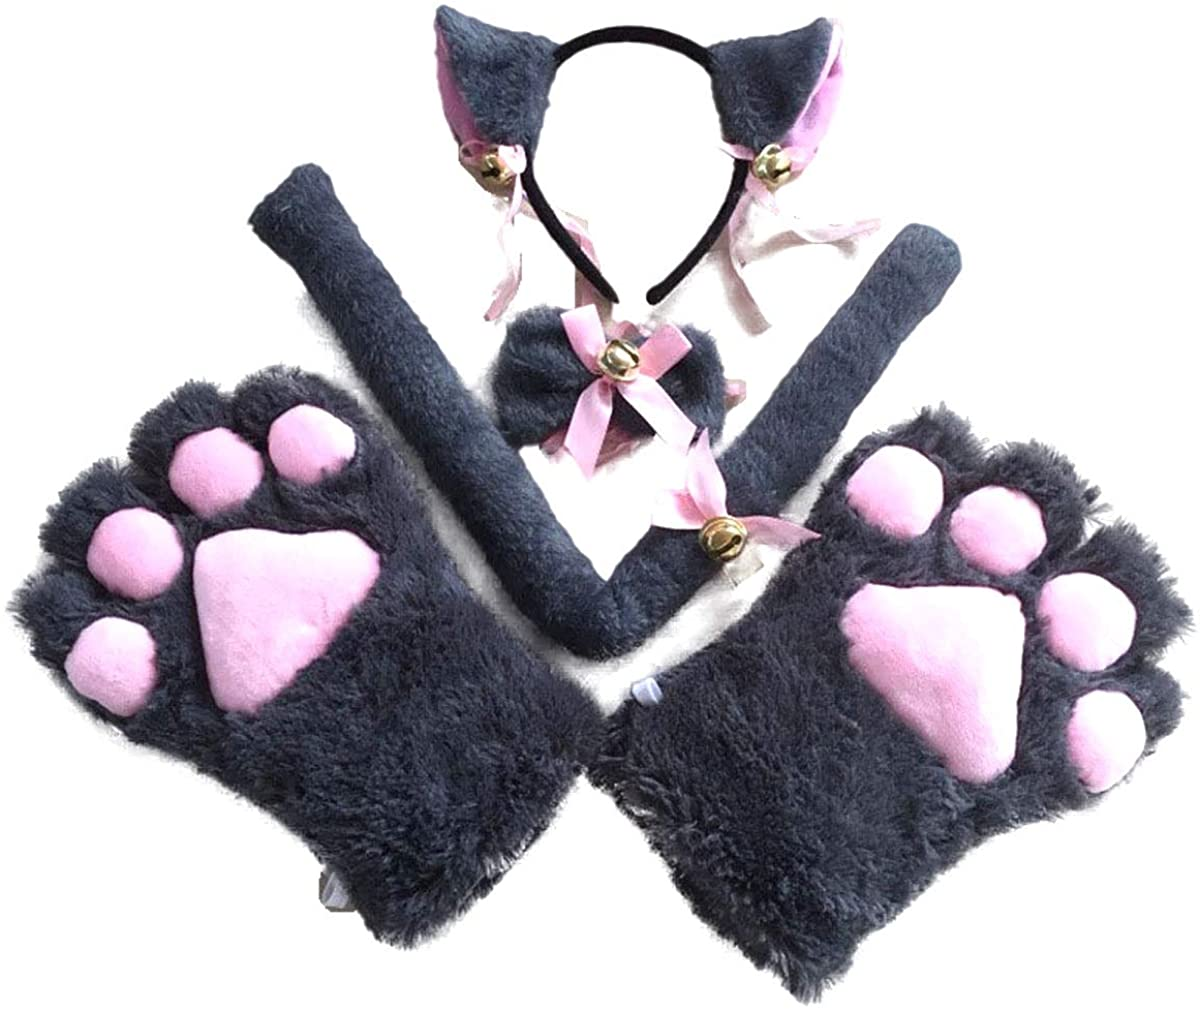 YiZYiF 4 Pcs Women Girls Cat Cosplay Costume Accessories Cat Ears Hair Hoop/Hair Clip and Tail with Collar Paws Gloves